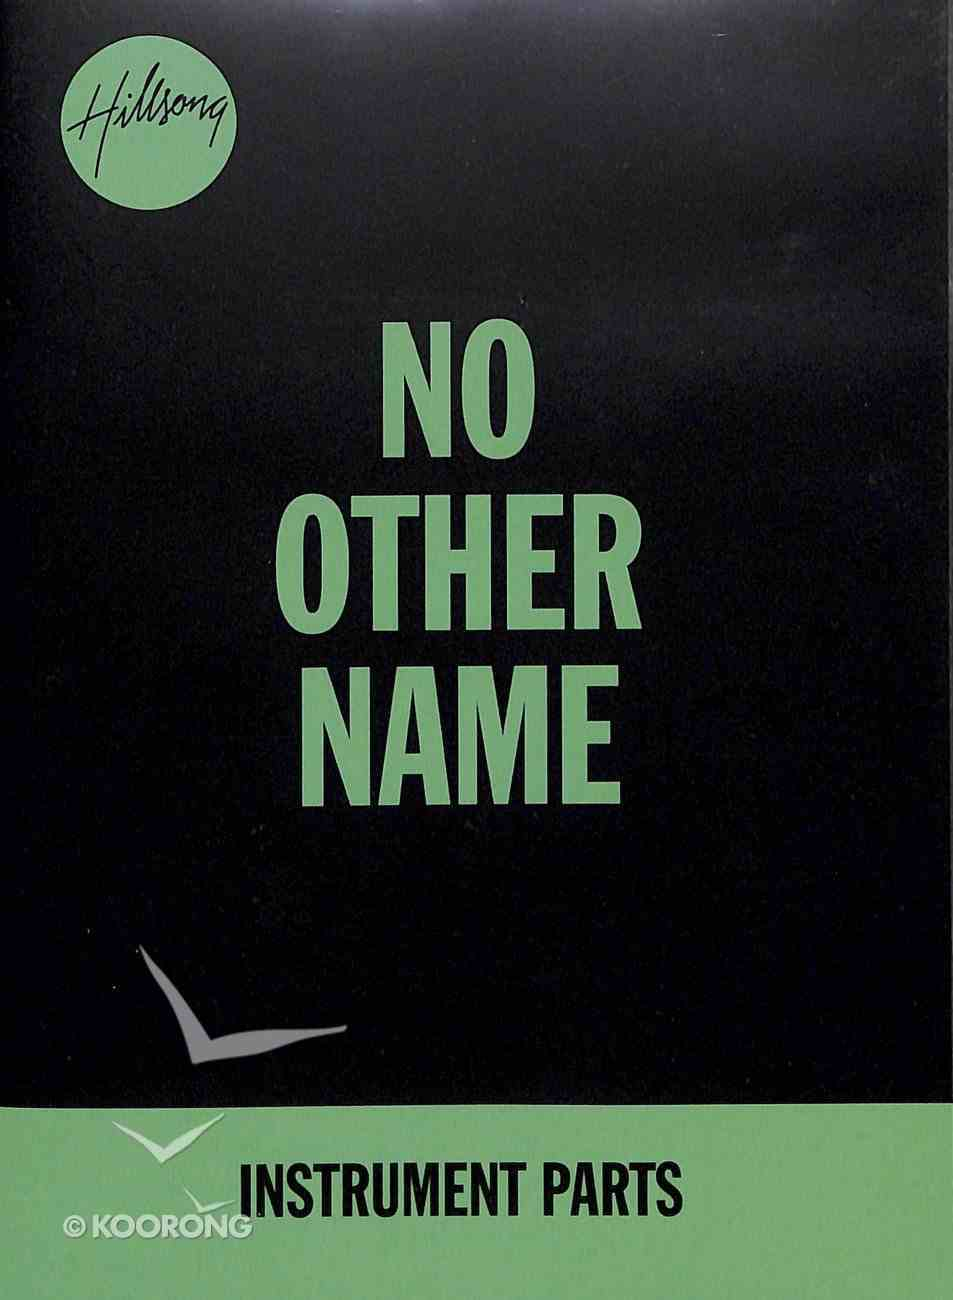 2014 No Other Name (Instrument Parts) CD